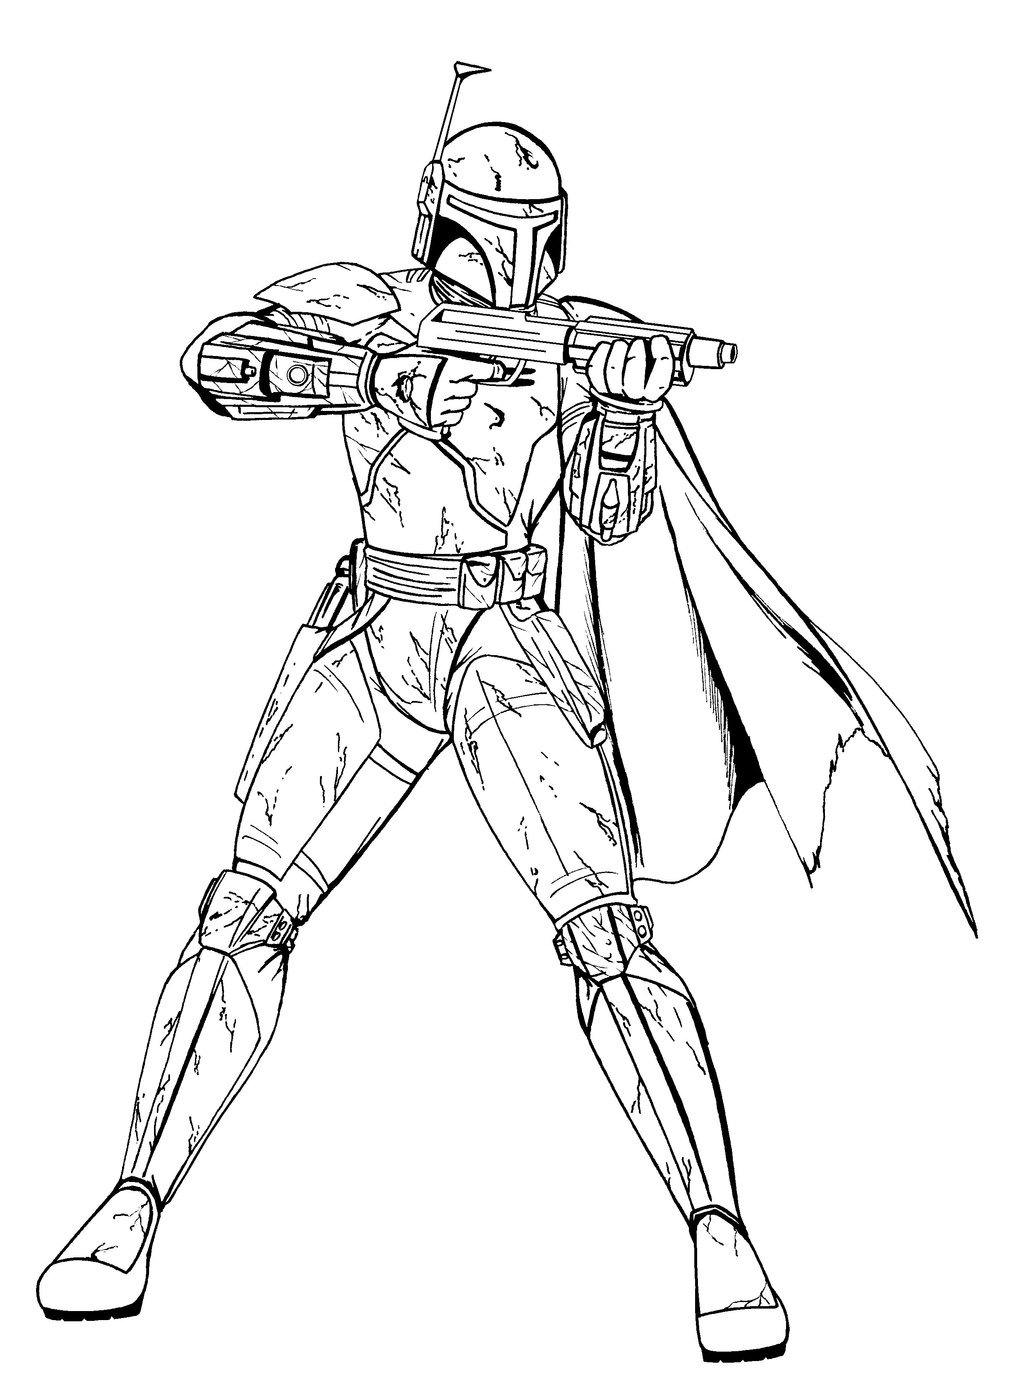 star wars free coloring pages coloring pages star wars free printable coloring pages wars coloring star pages free